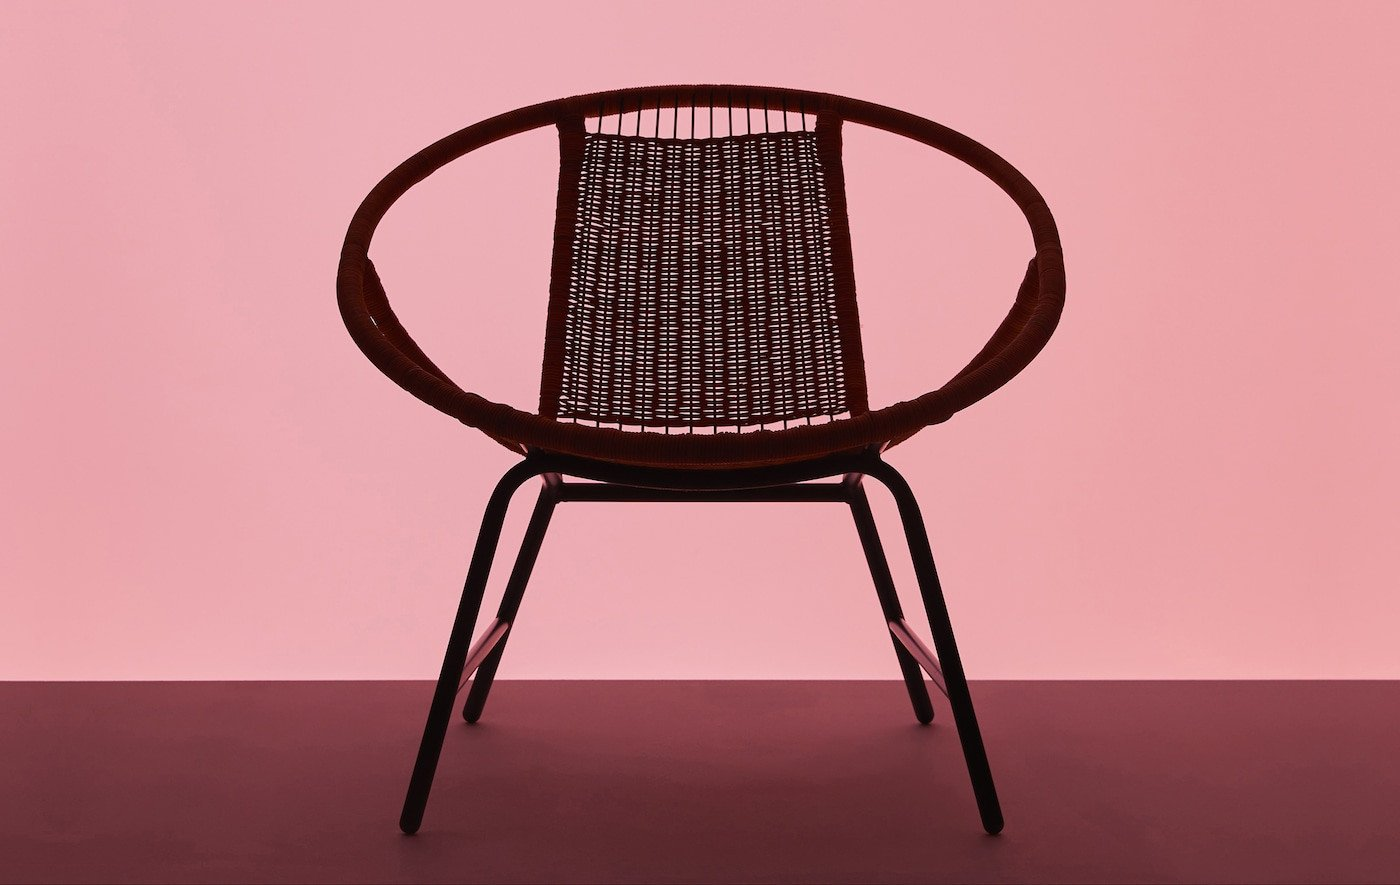 Sitting Chairs for Bedroom Best Of the New Gratulera Collection Of Iconic Products Ikea